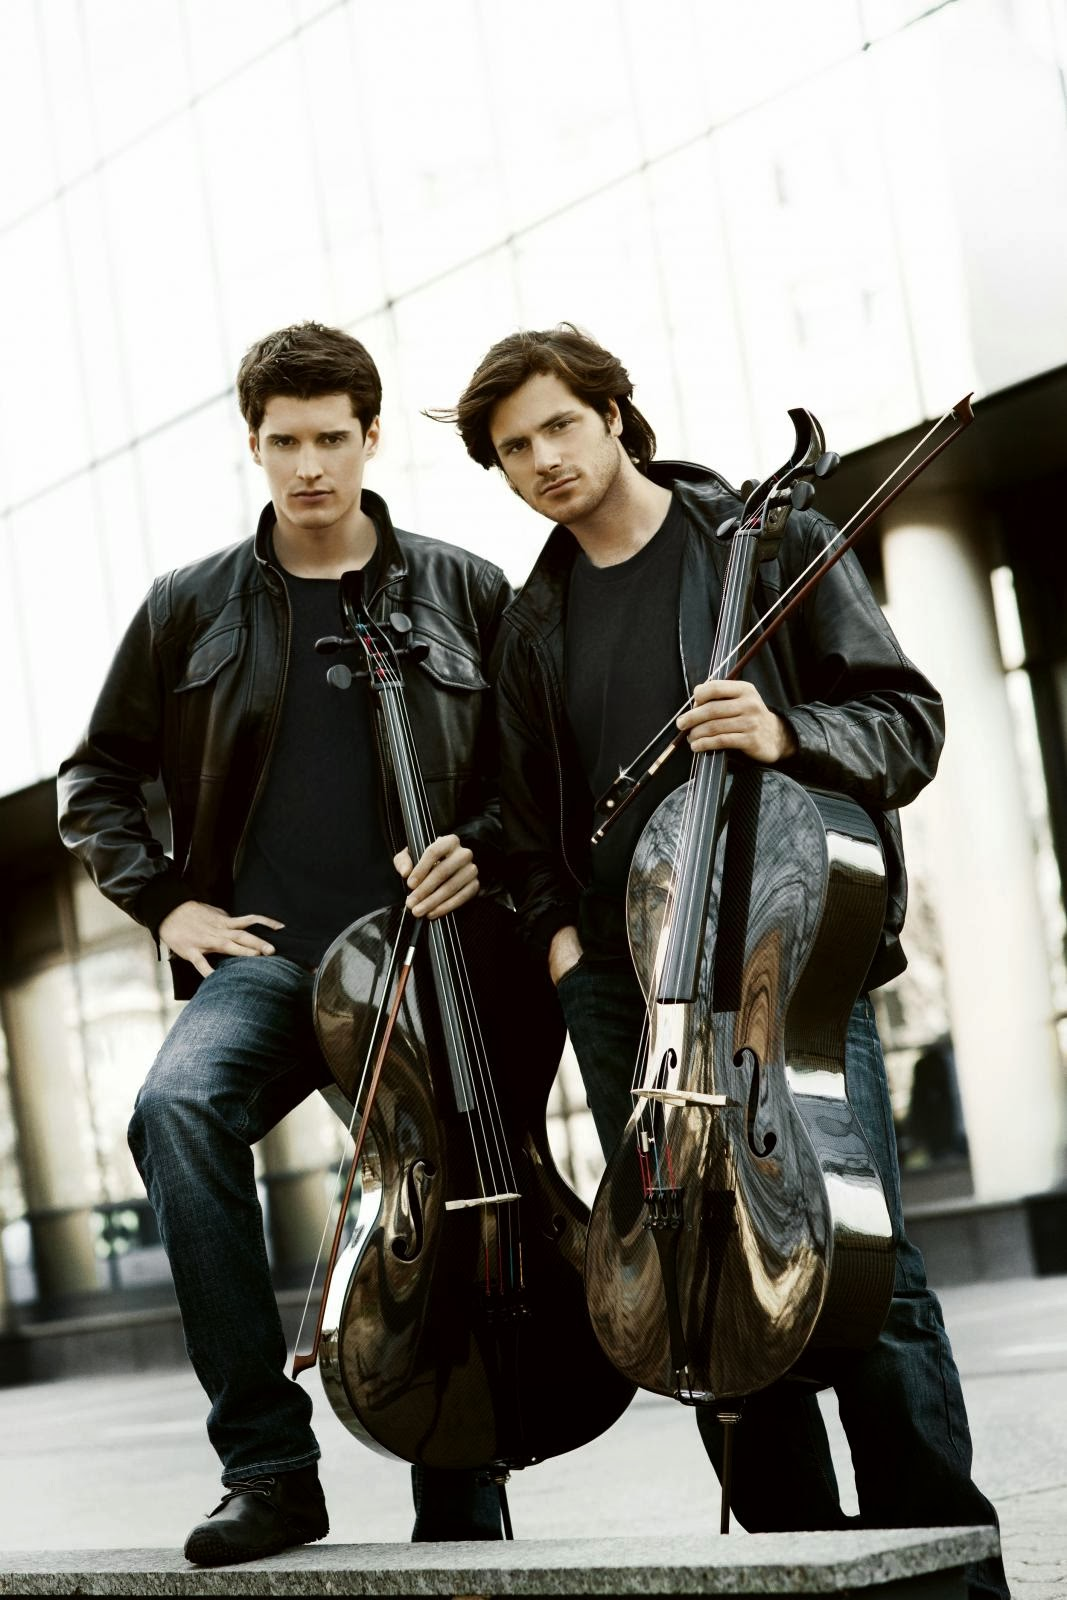 From the birds and the bees, to family trees : The 2CELLOS  Kings of